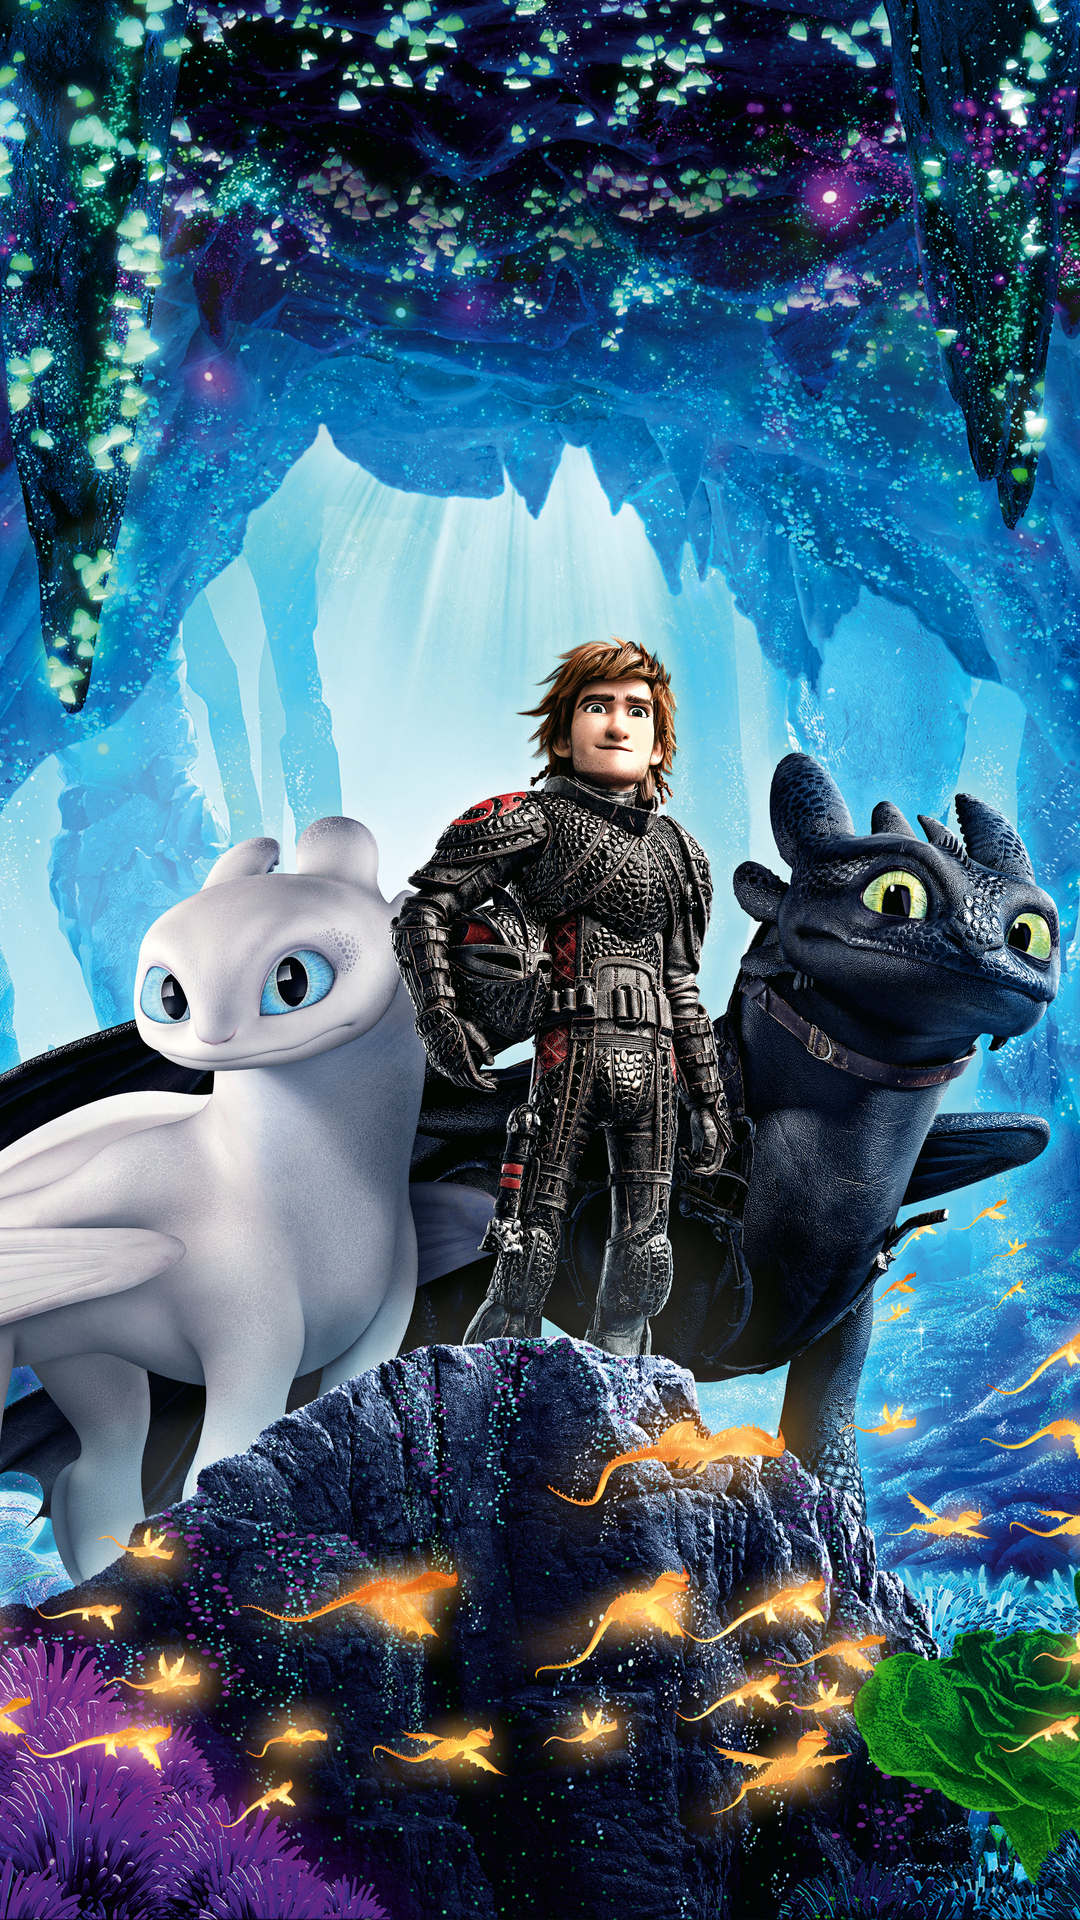 1080x1920 How To Train Your Dragon Into The Hidden World 5k Iphone